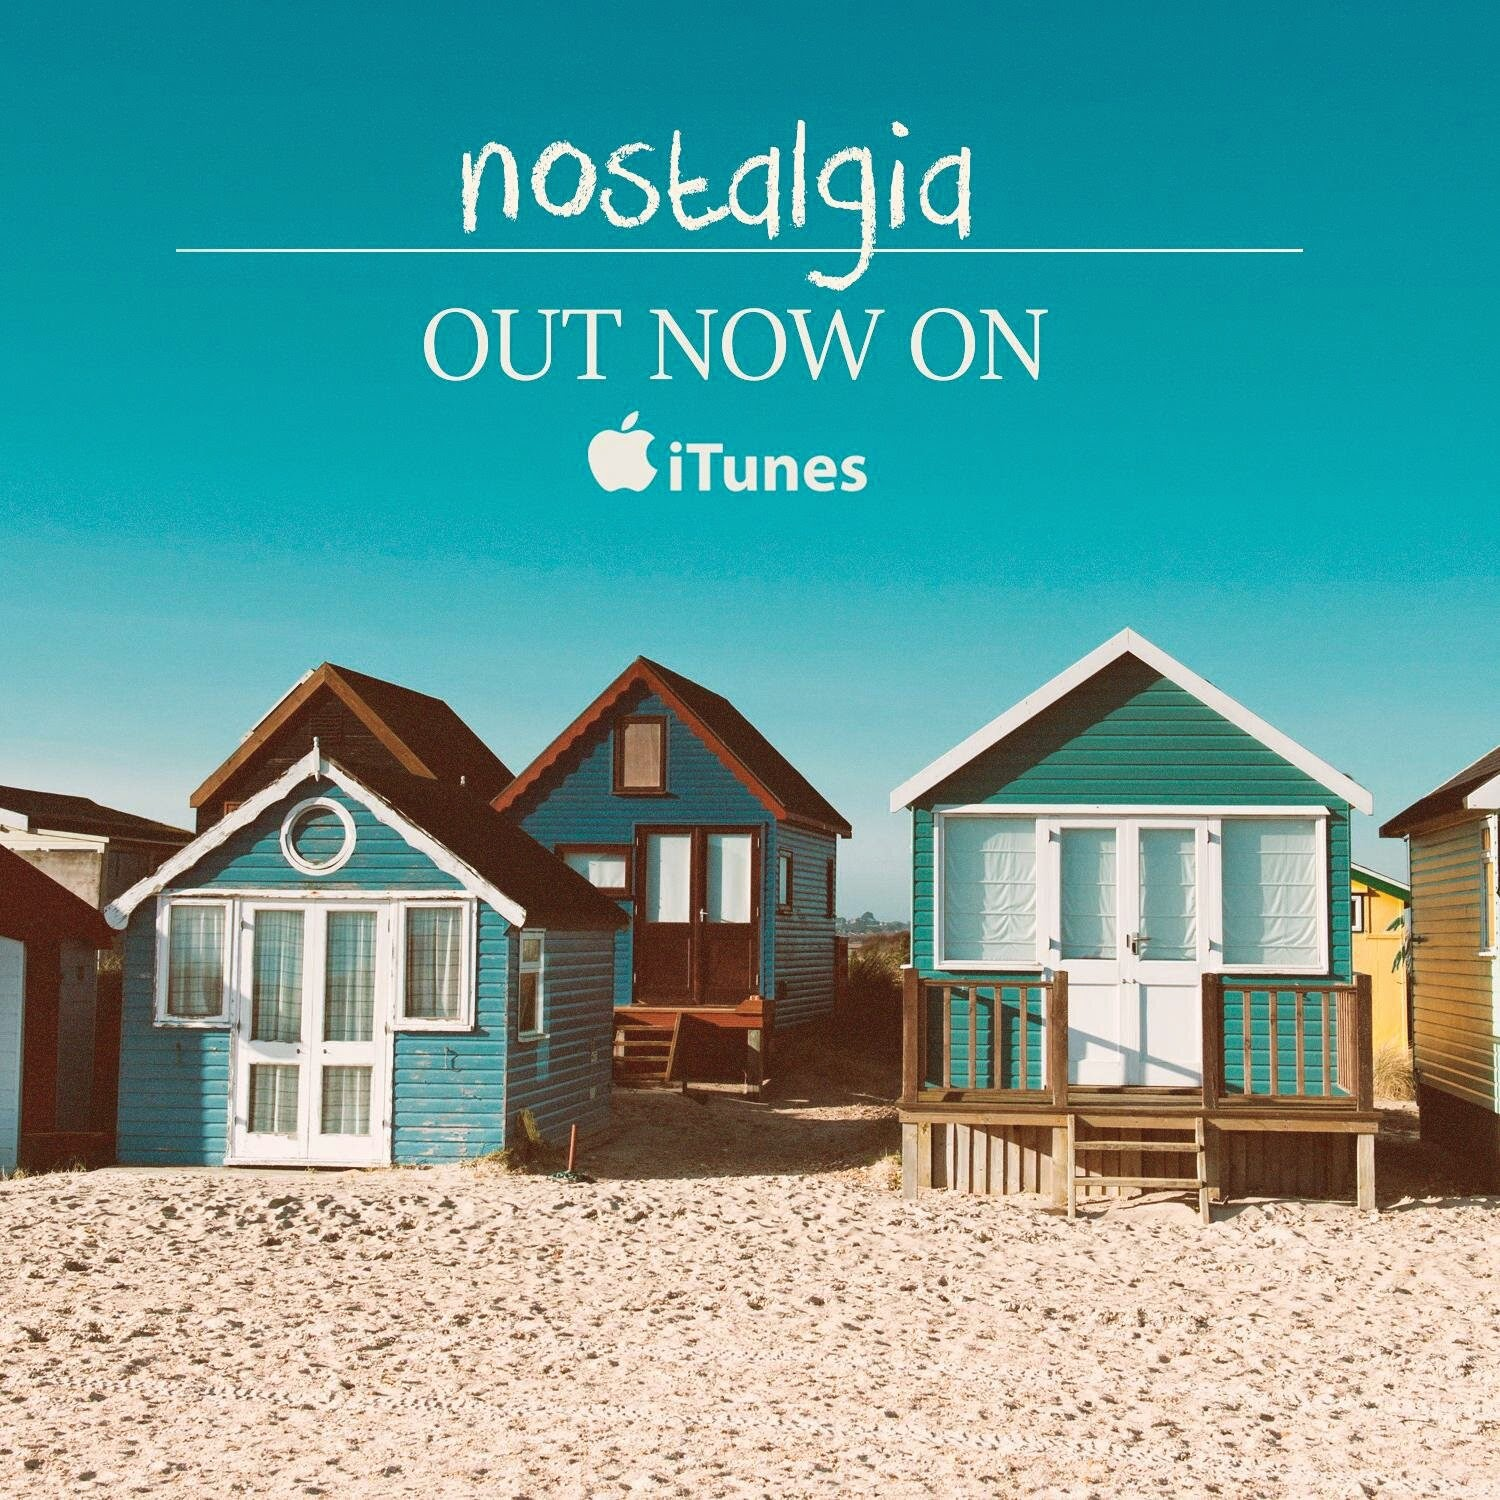 https://itunes.apple.com/gb/album/nostalgia-single/id883292180